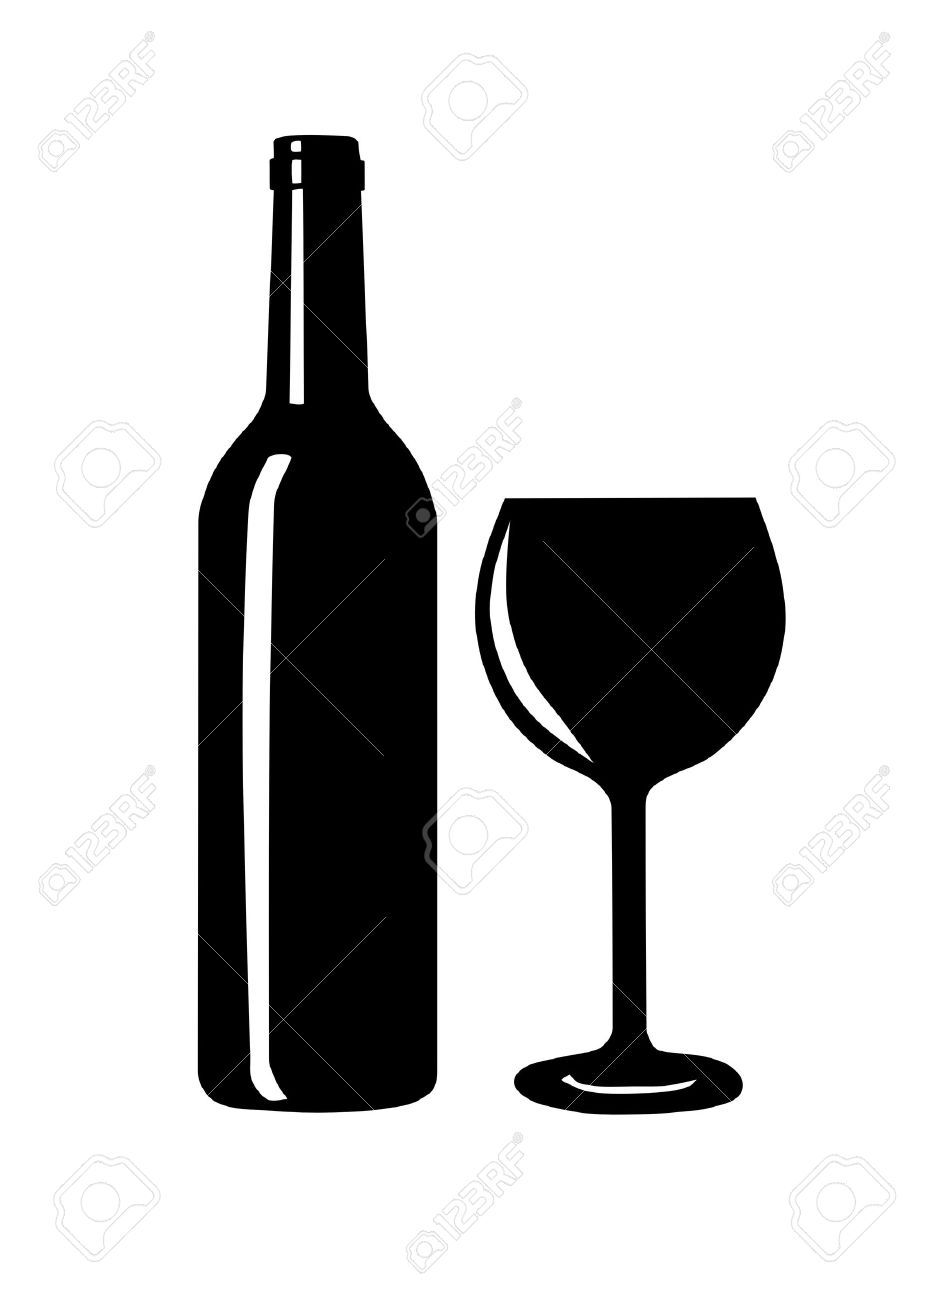 Wine bottle and glass clipart image black and white Wine bottle and glass clipart 1 » Clipart Portal image black and white